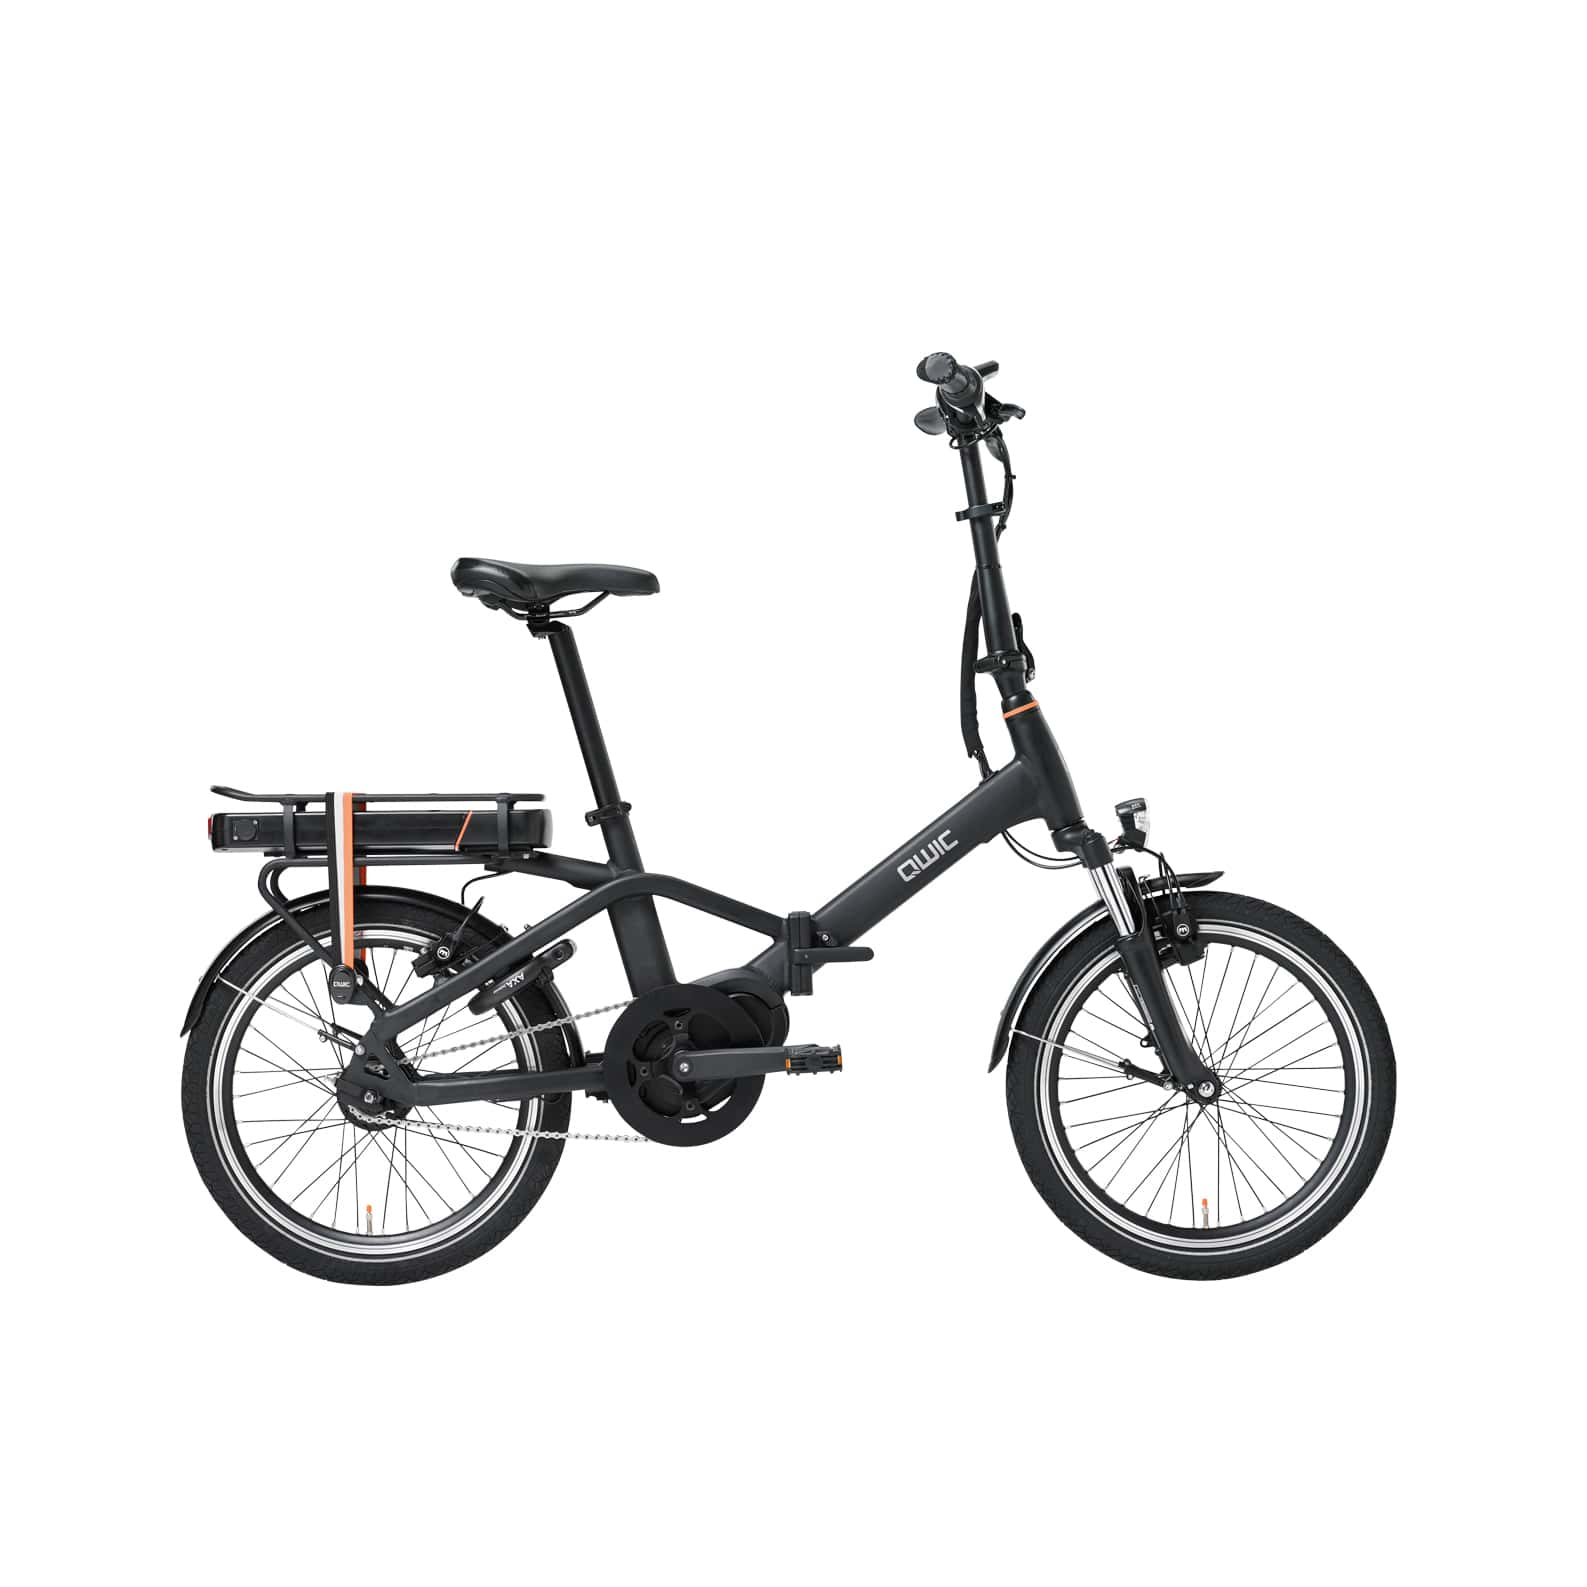 qwic-compact-mn7-vouwfiets-3.jpg